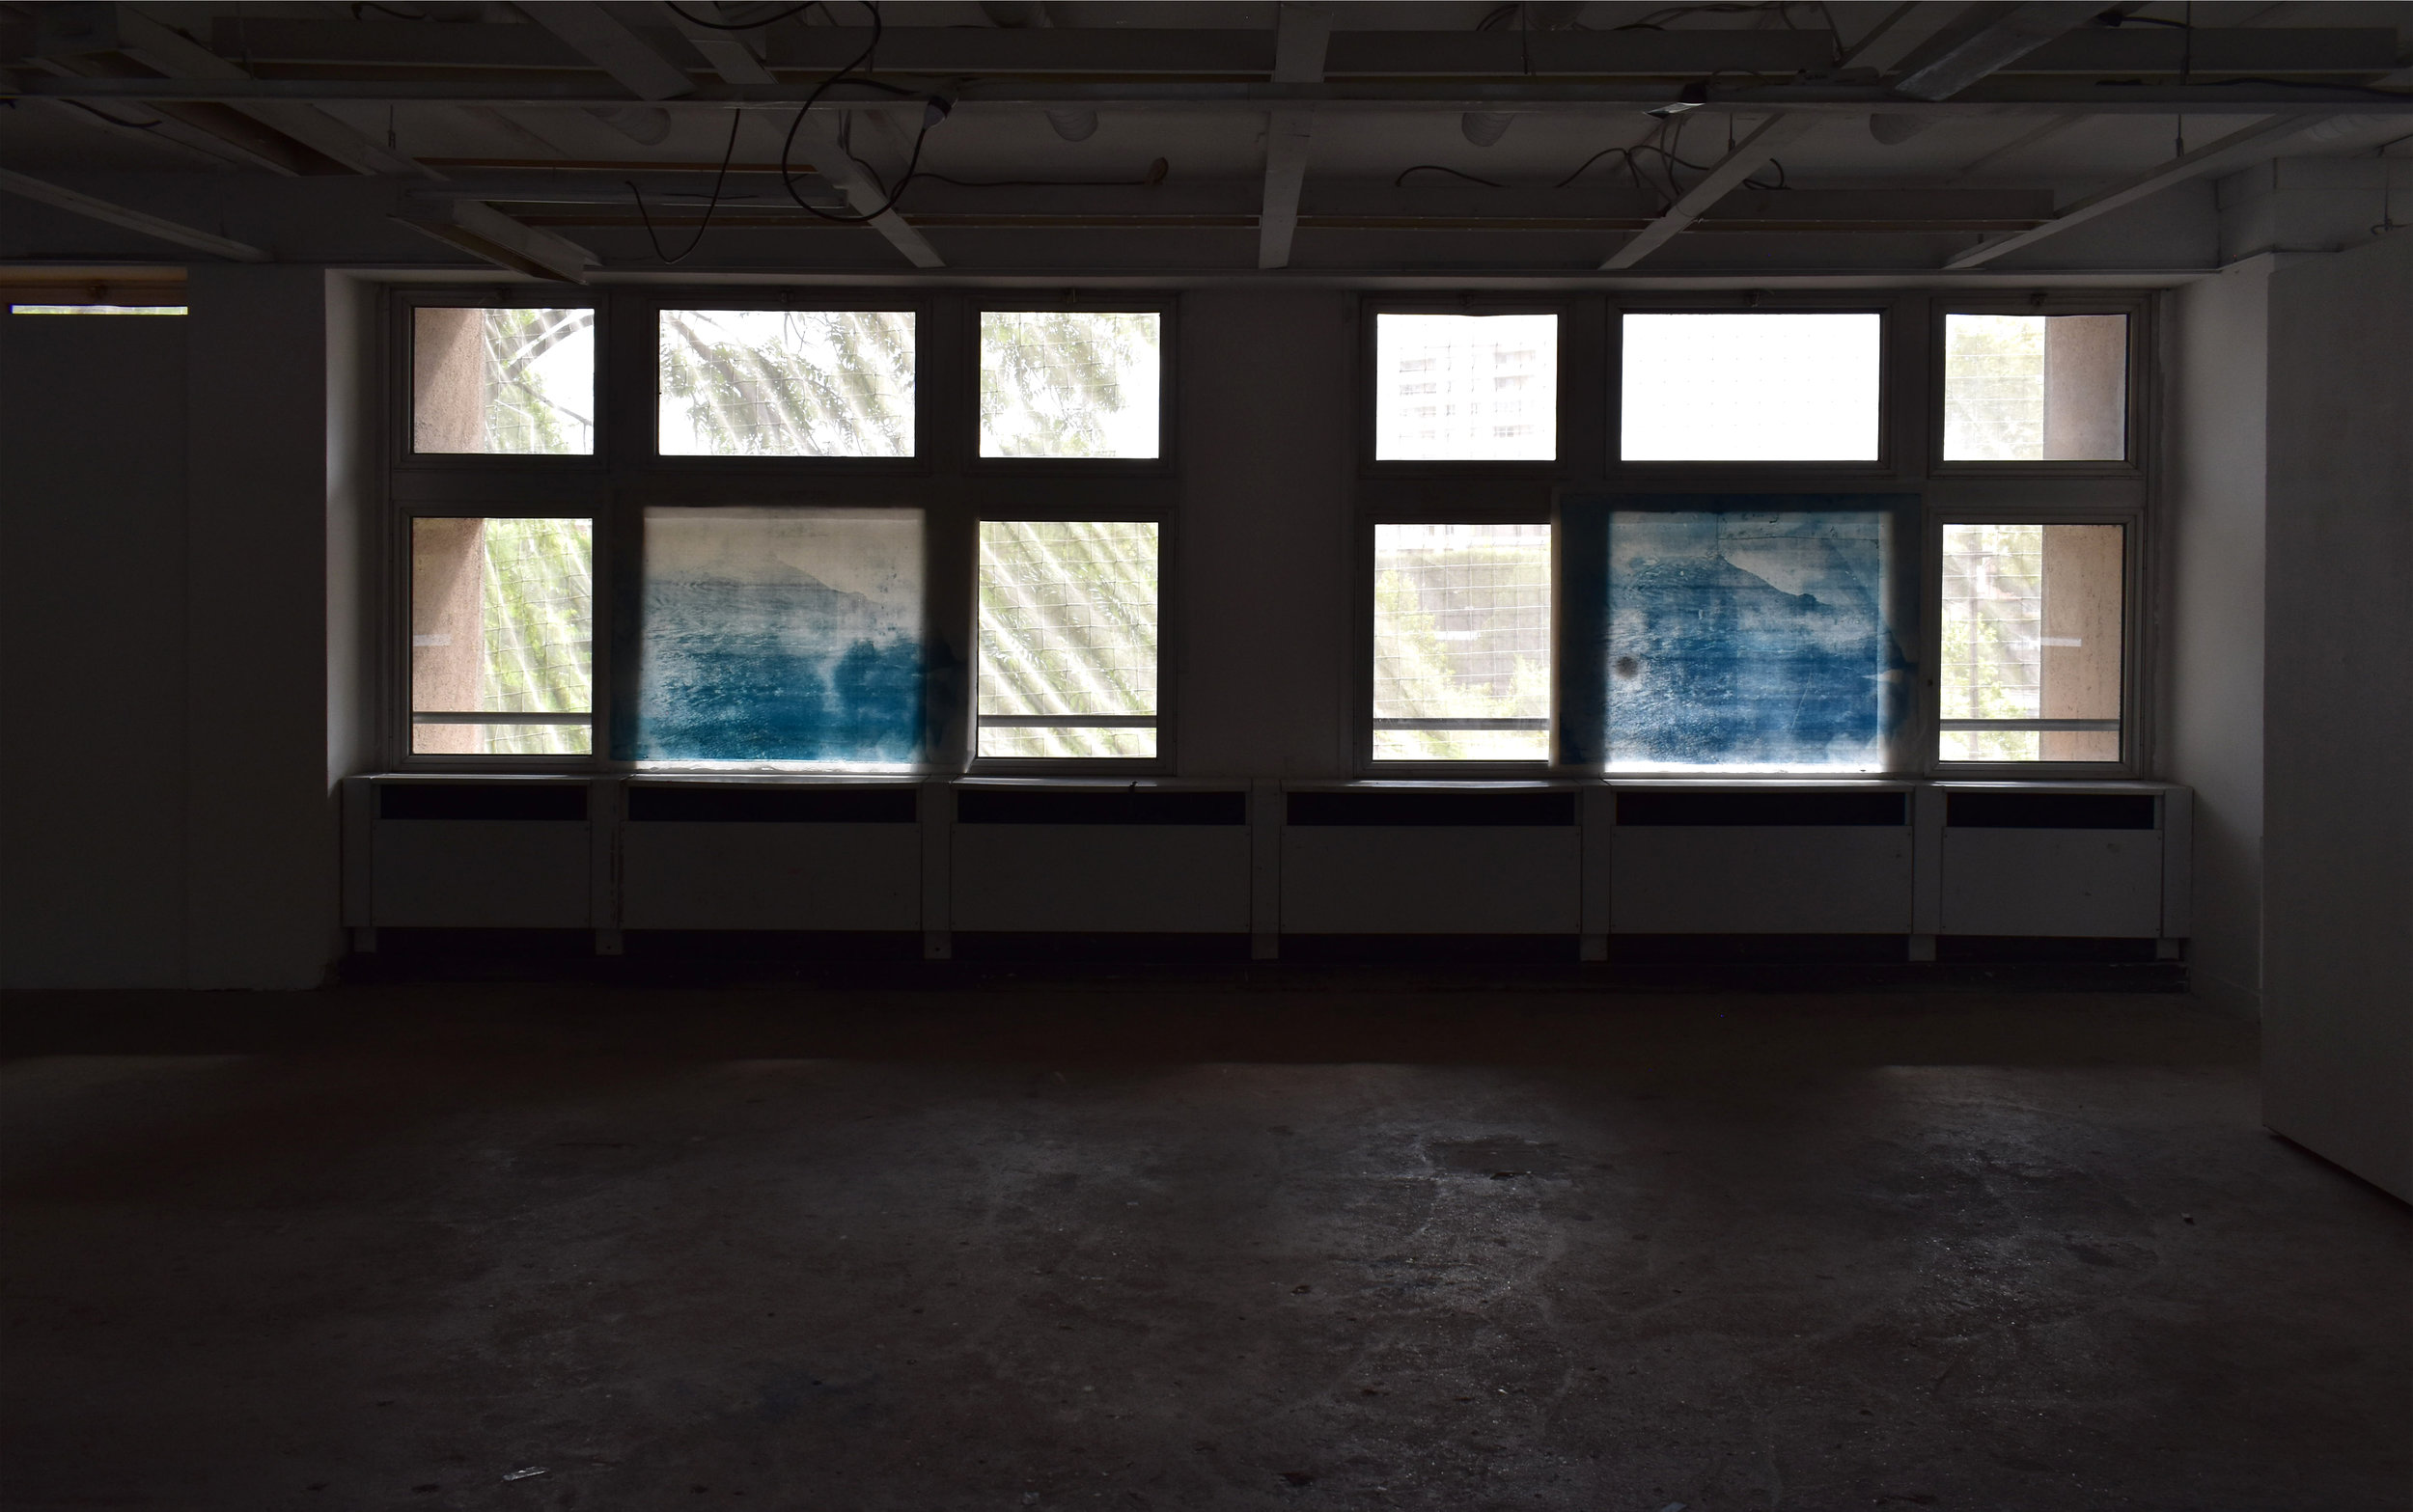 Over and Under (Whirlpool),  No. 3-4, Installation shot at Le 6b, Saint-Denis, France.